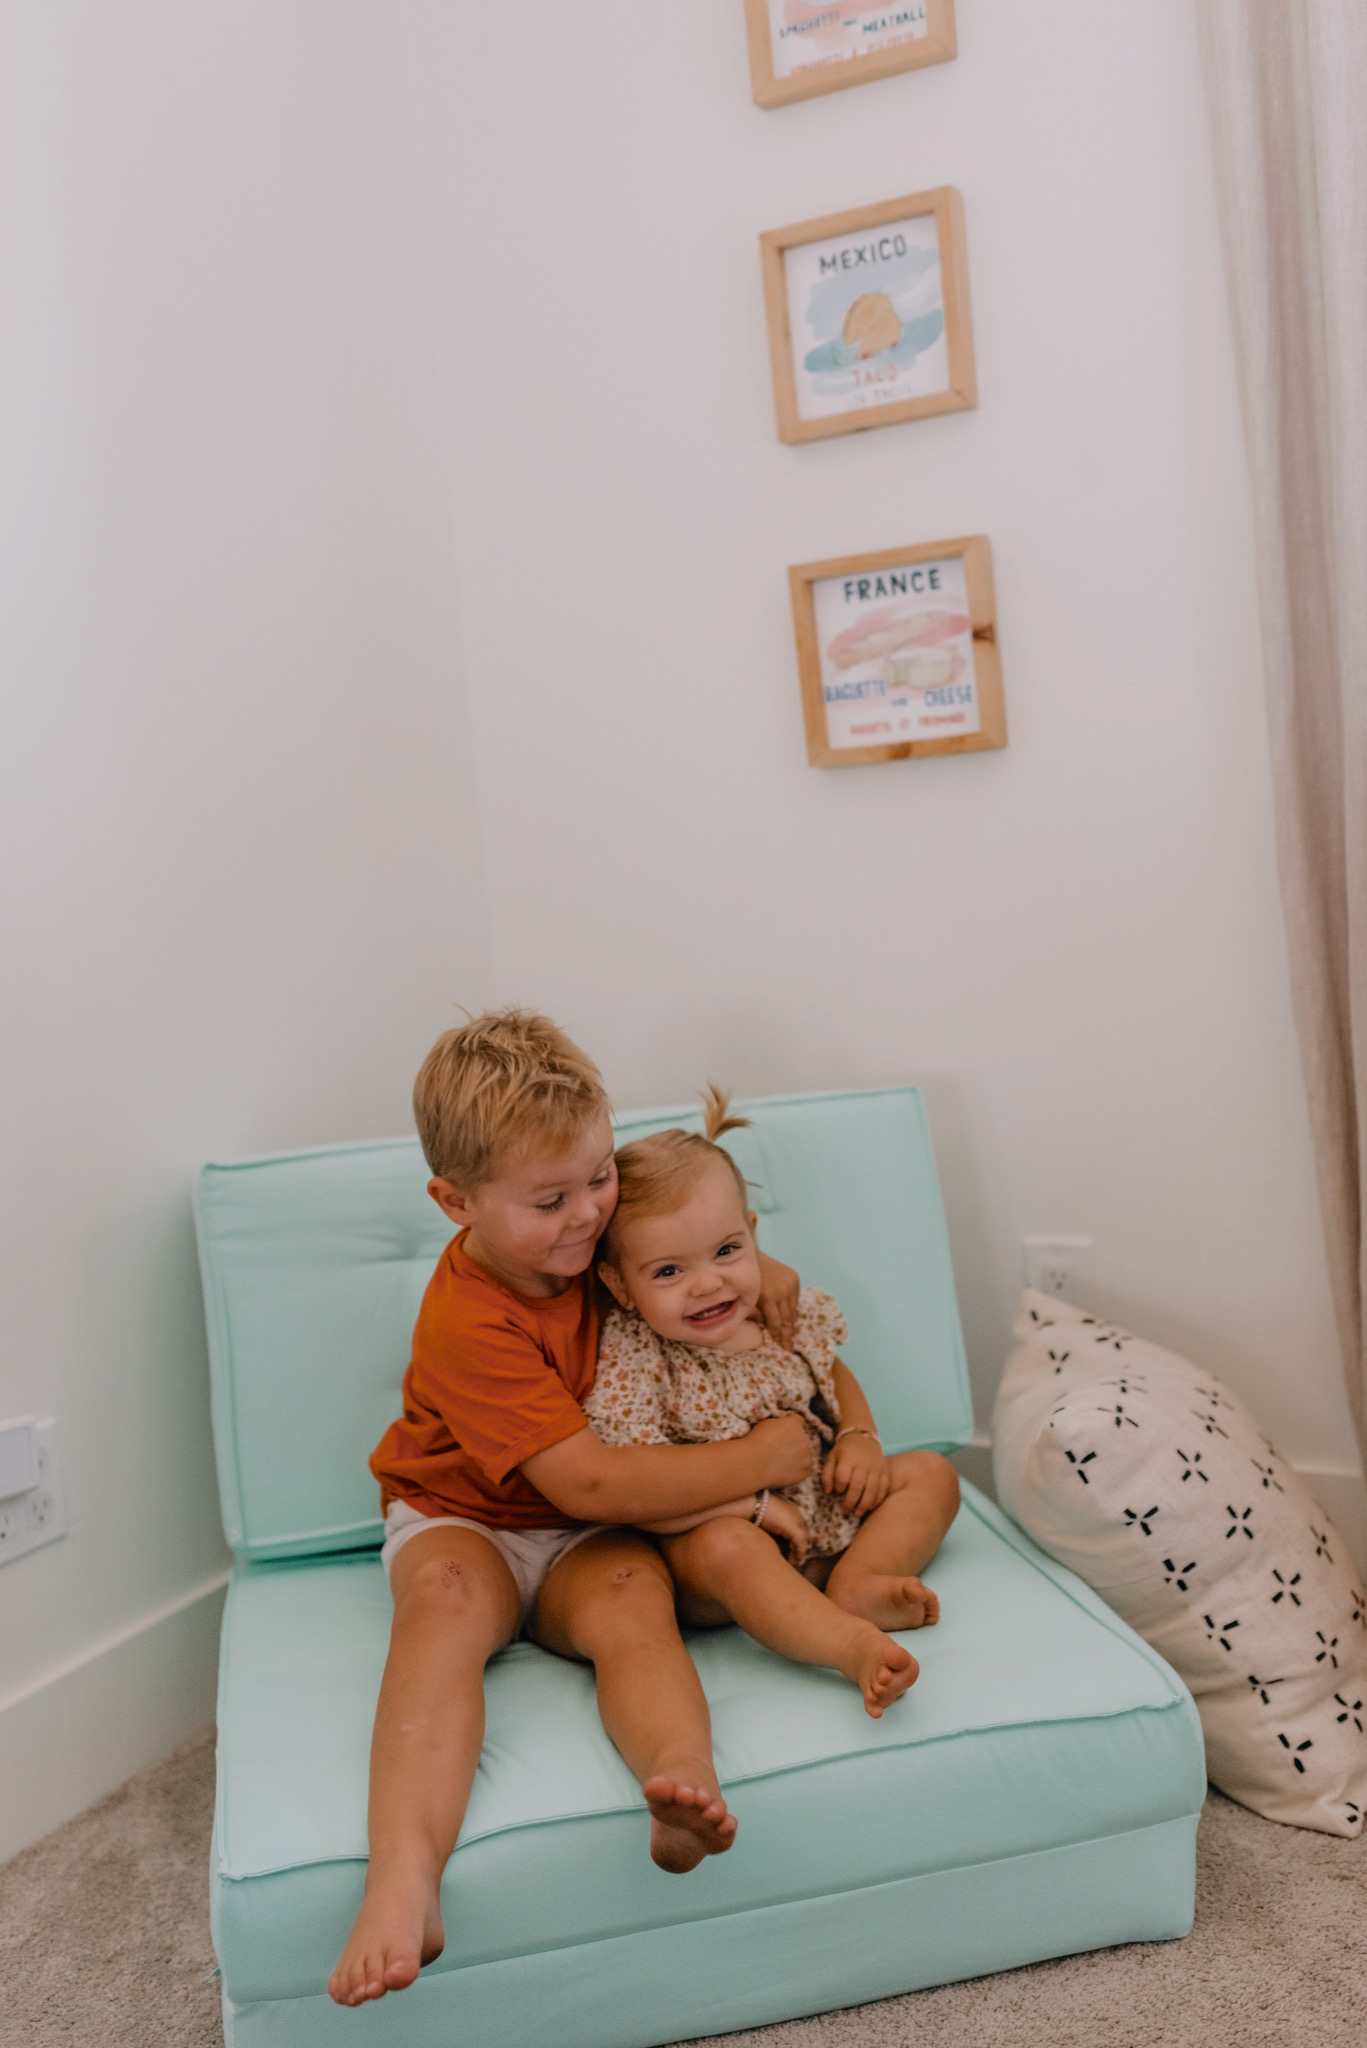 Walmart Decor by popular San Diego life and style blog, Navy Grace: image of a young boy and girl sitting together on a blue chair next to some framed world country prints.